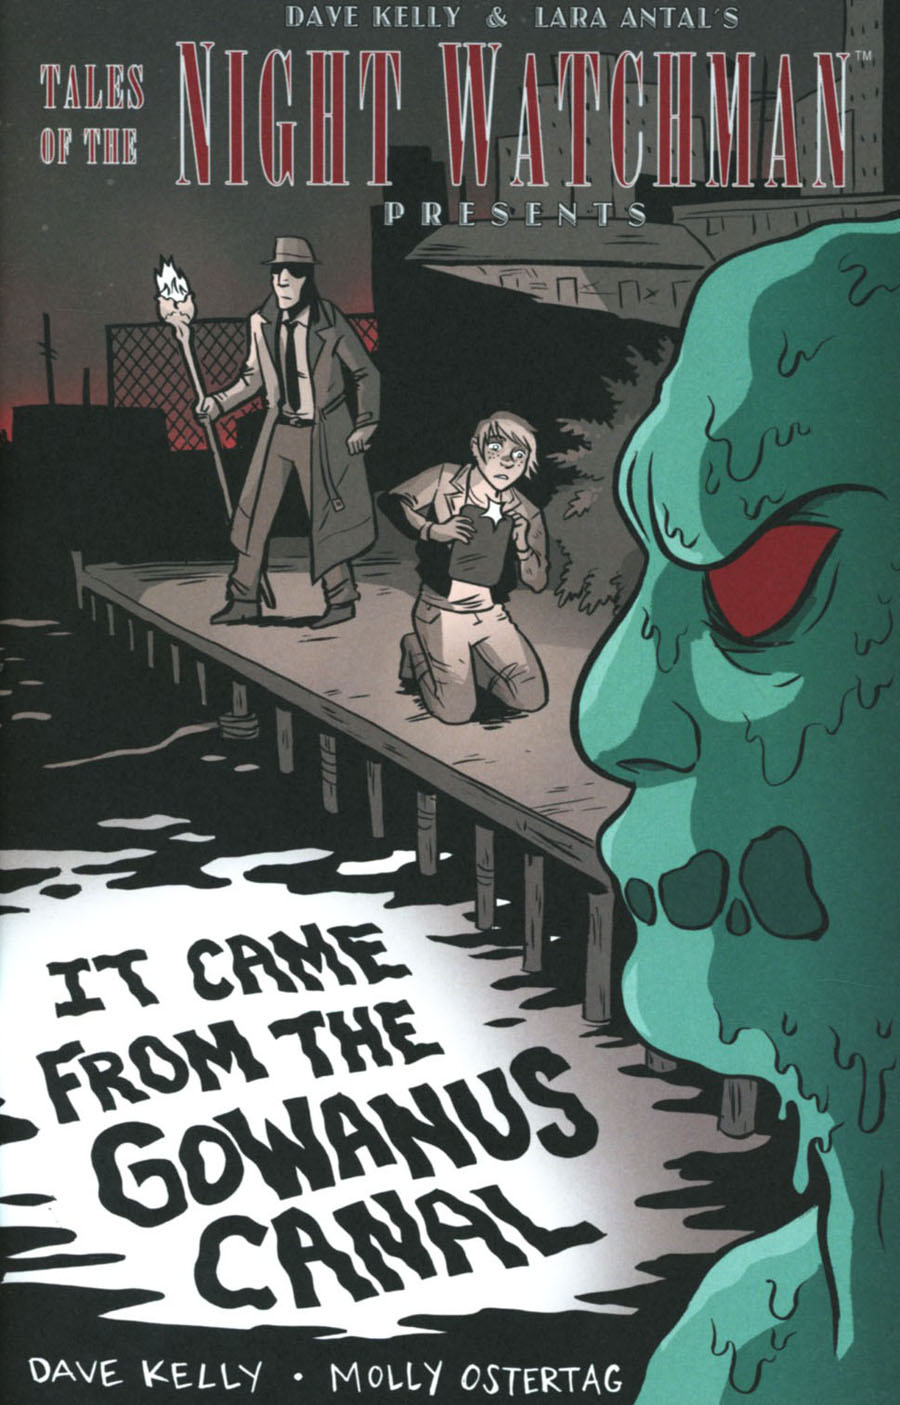 Tales Of The Night Watchman It Came From The Gowanus Canal One-Shot